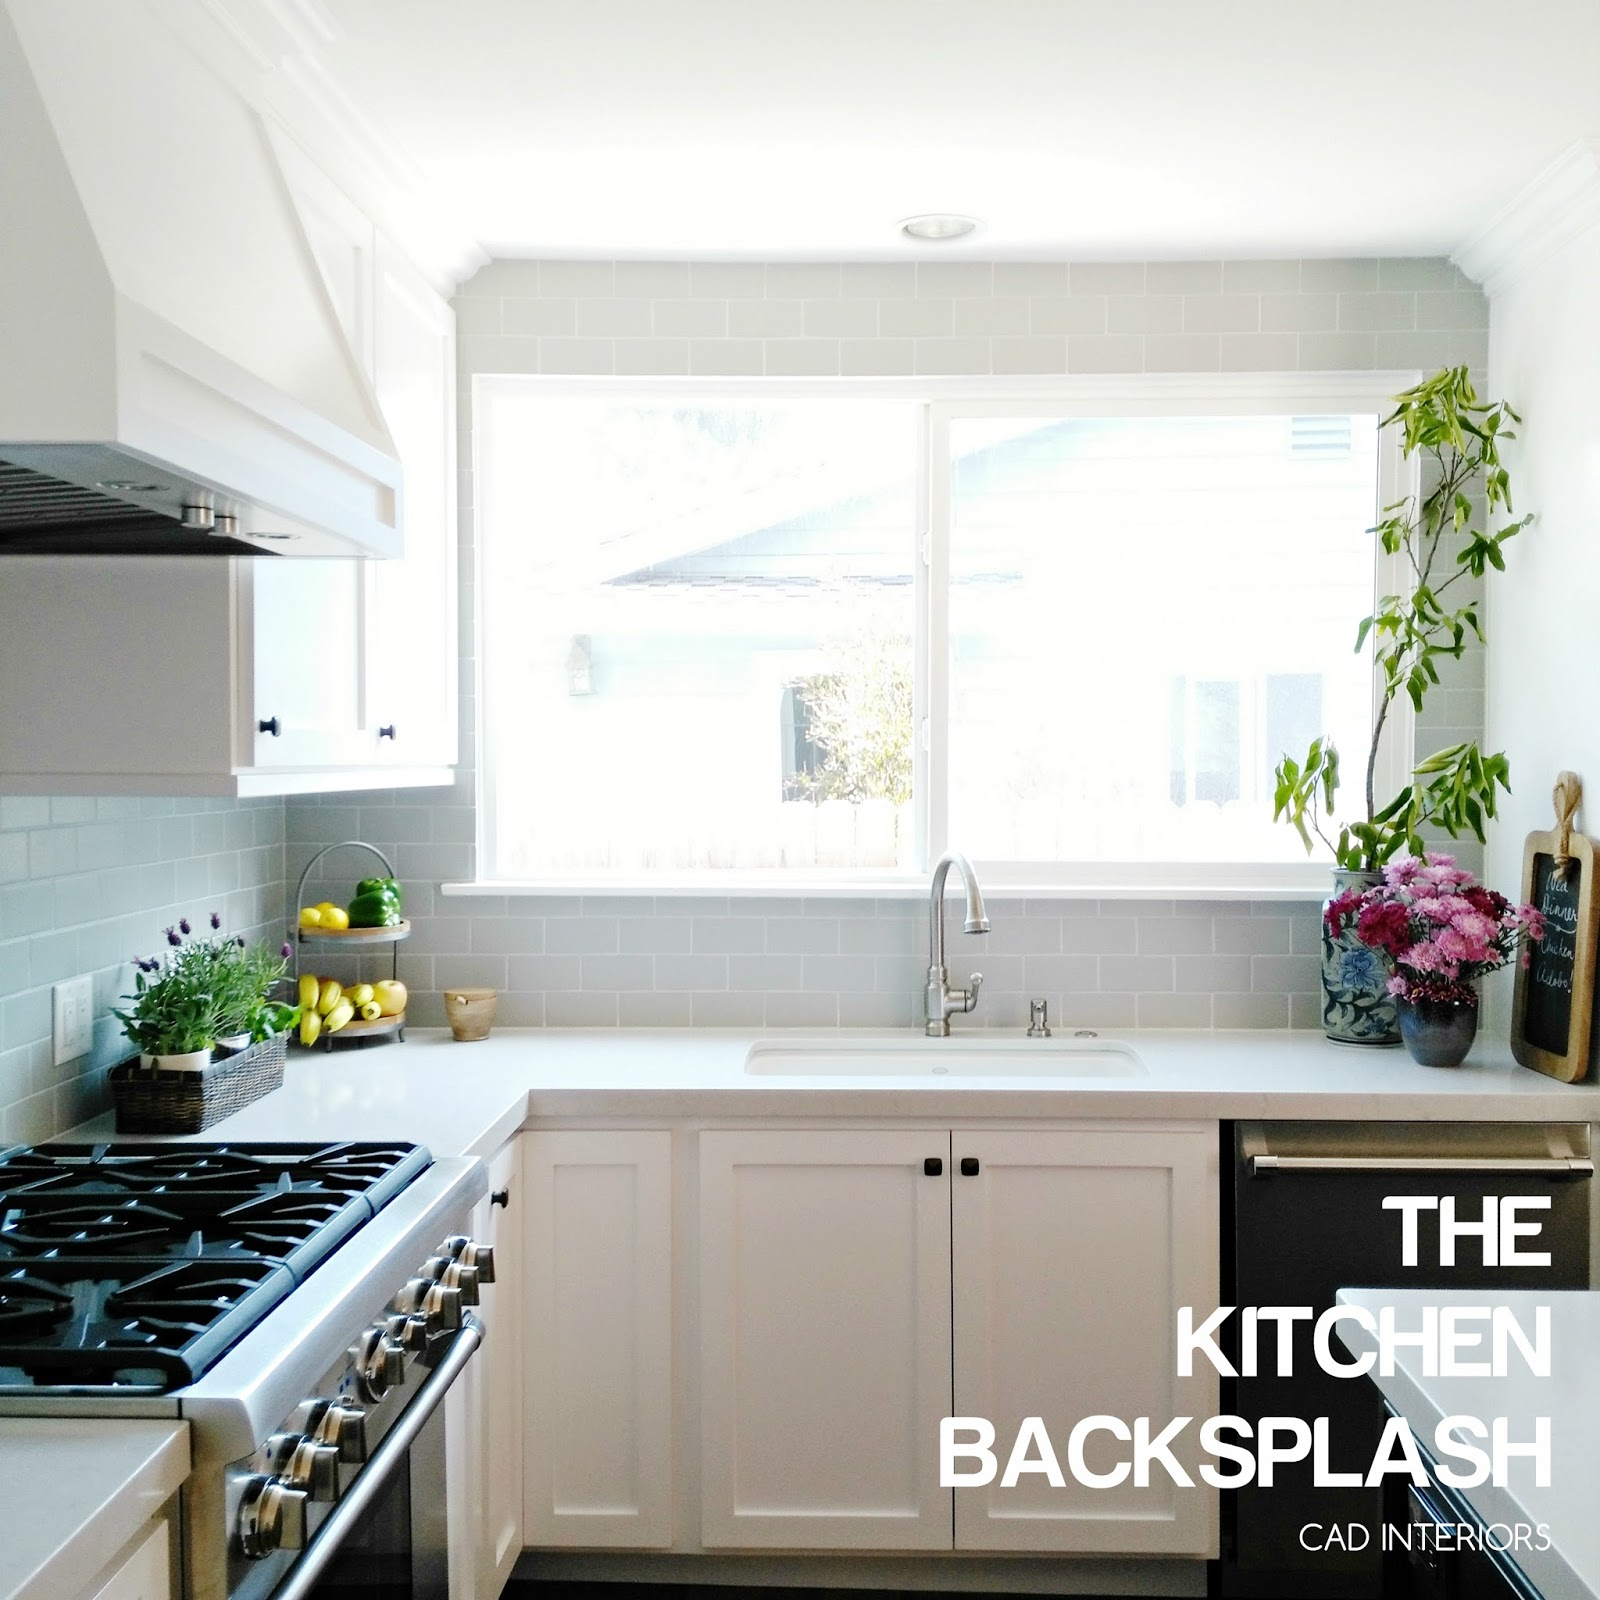 Diy Kitchen Tile Backsplash Cad Interiors Affordable Stylish Interiors